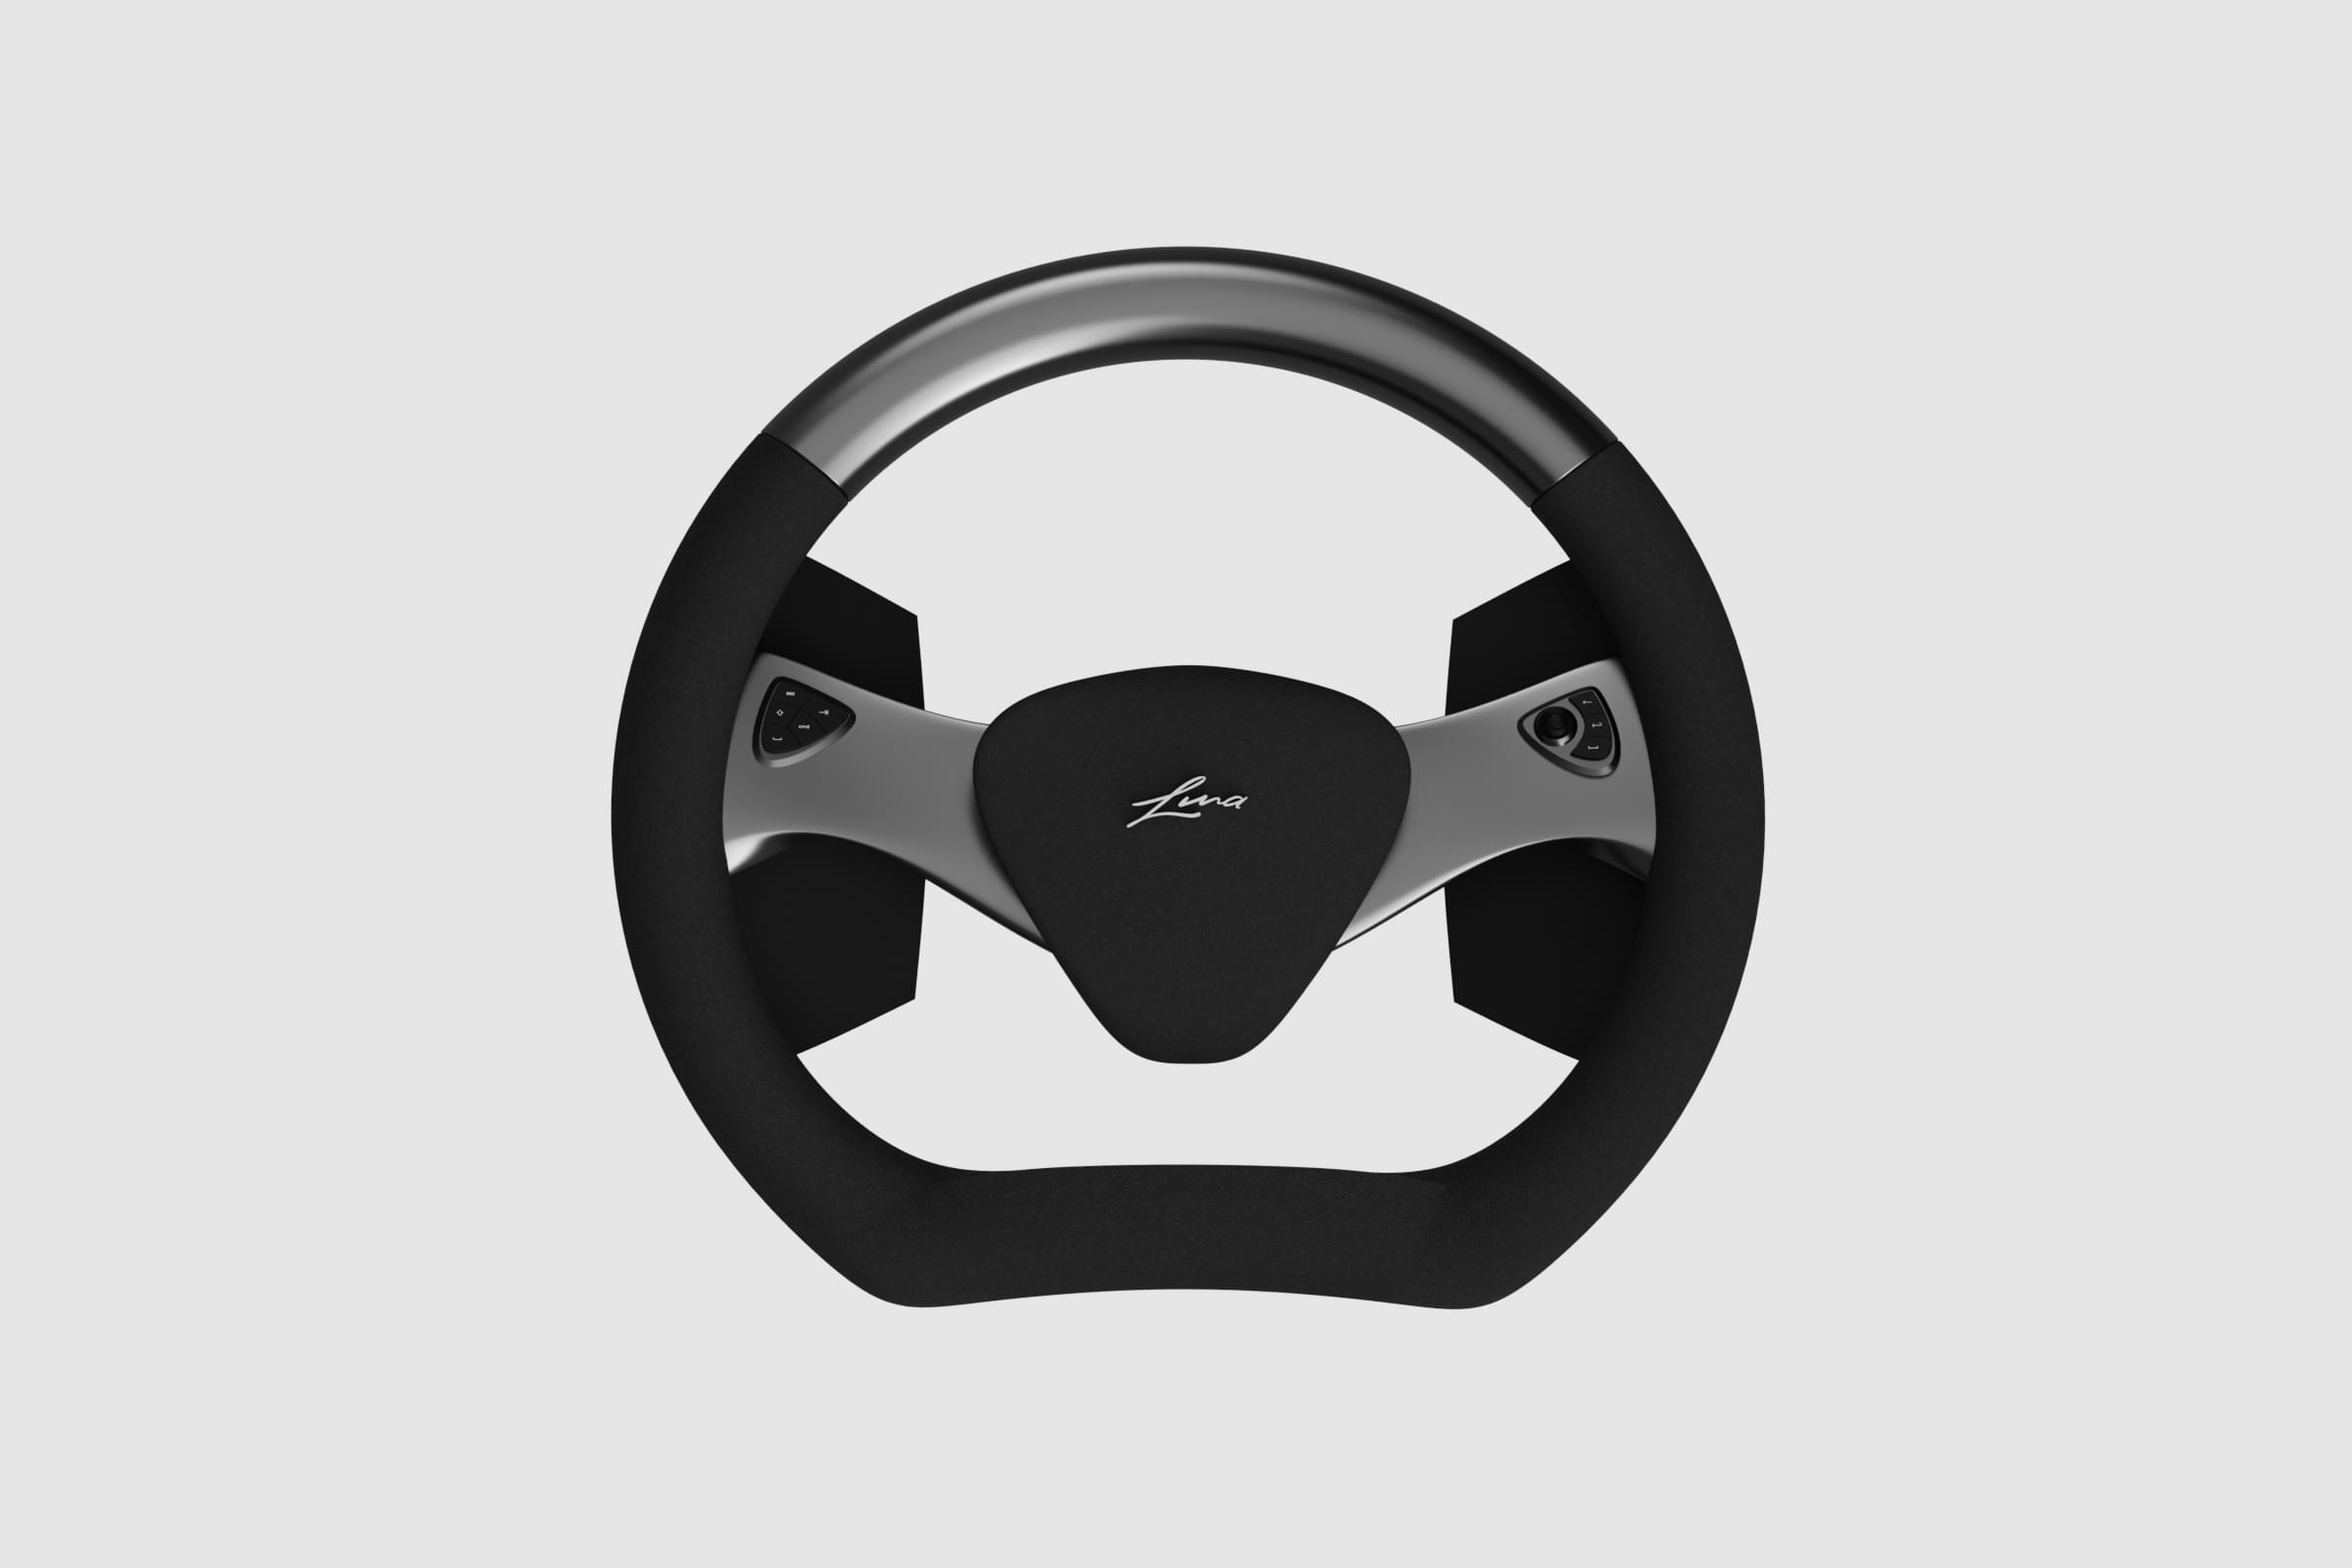 The steering wheel for autonomous driving was created as part of a competition. The competition was for a 3d construction and modelling software.